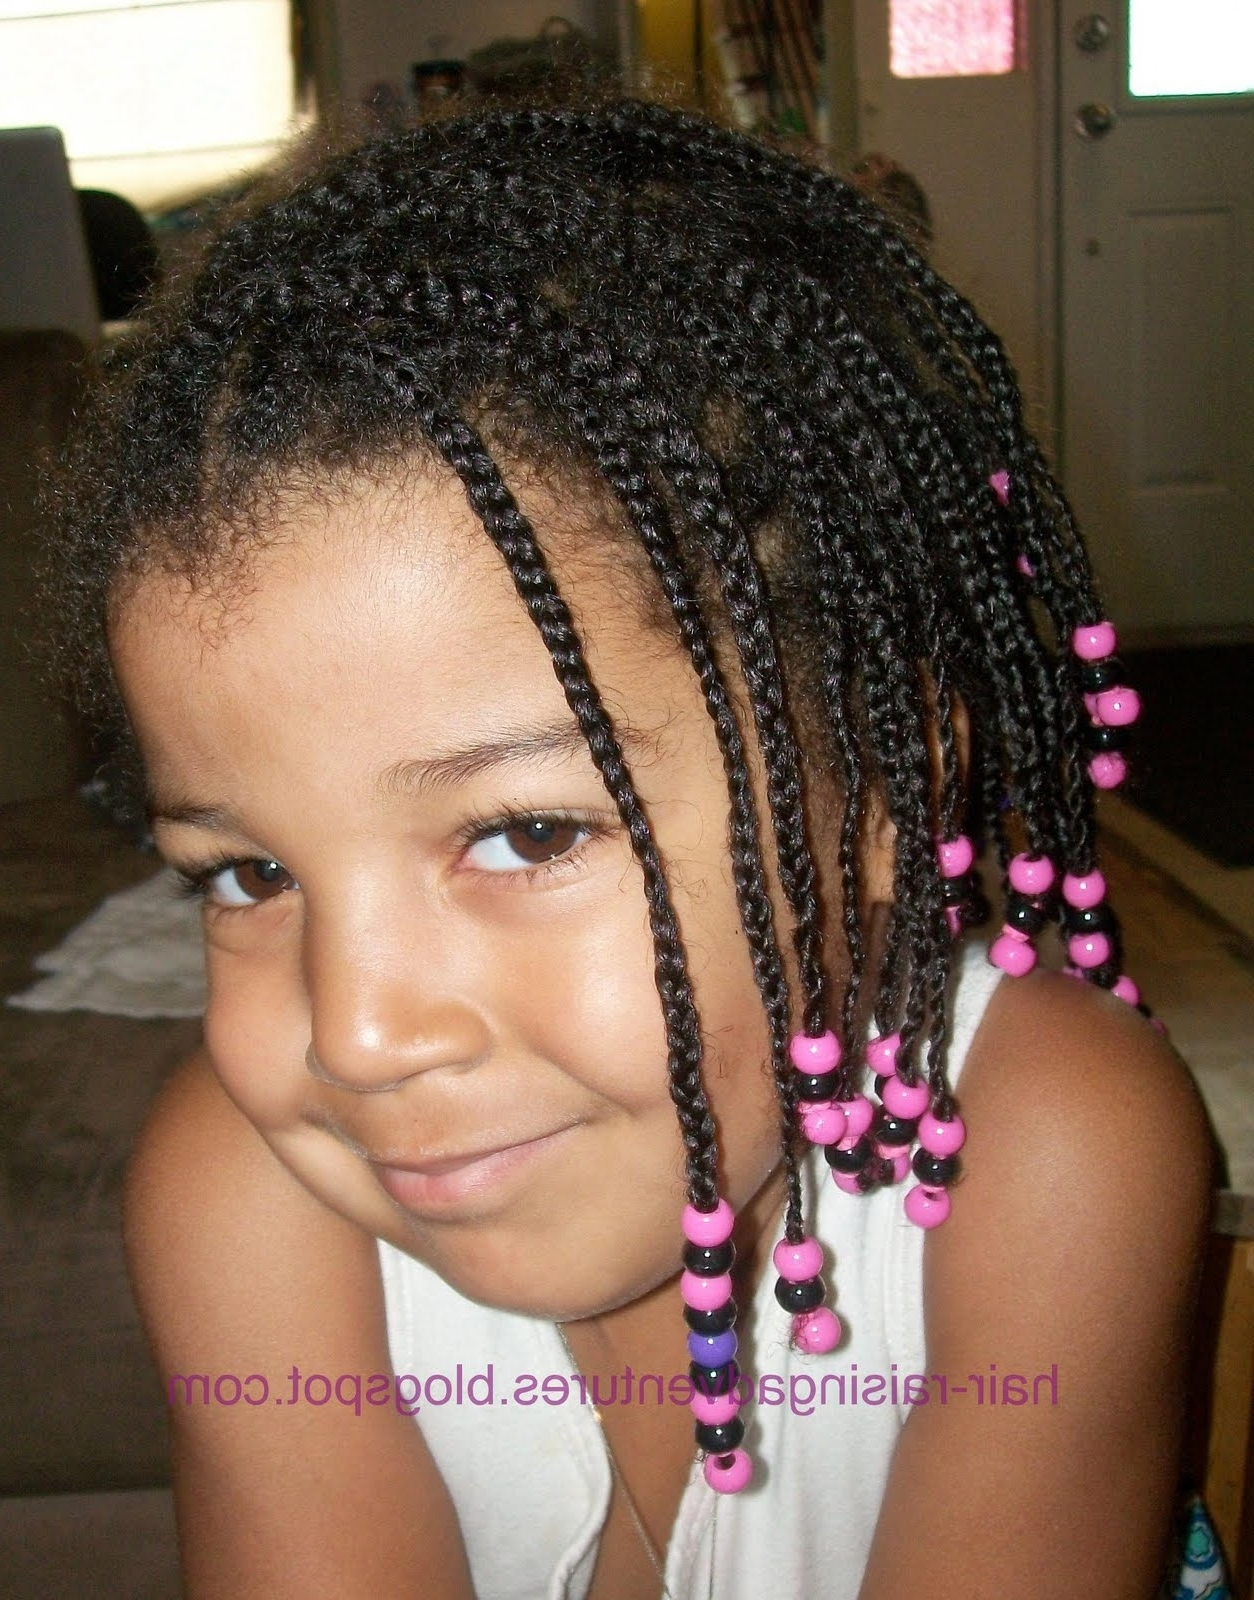 Hair Raising Adventures: Small Braids And Many Beads With Regard To Most Popular Mini Cornrows Hairstyles (View 6 of 15)